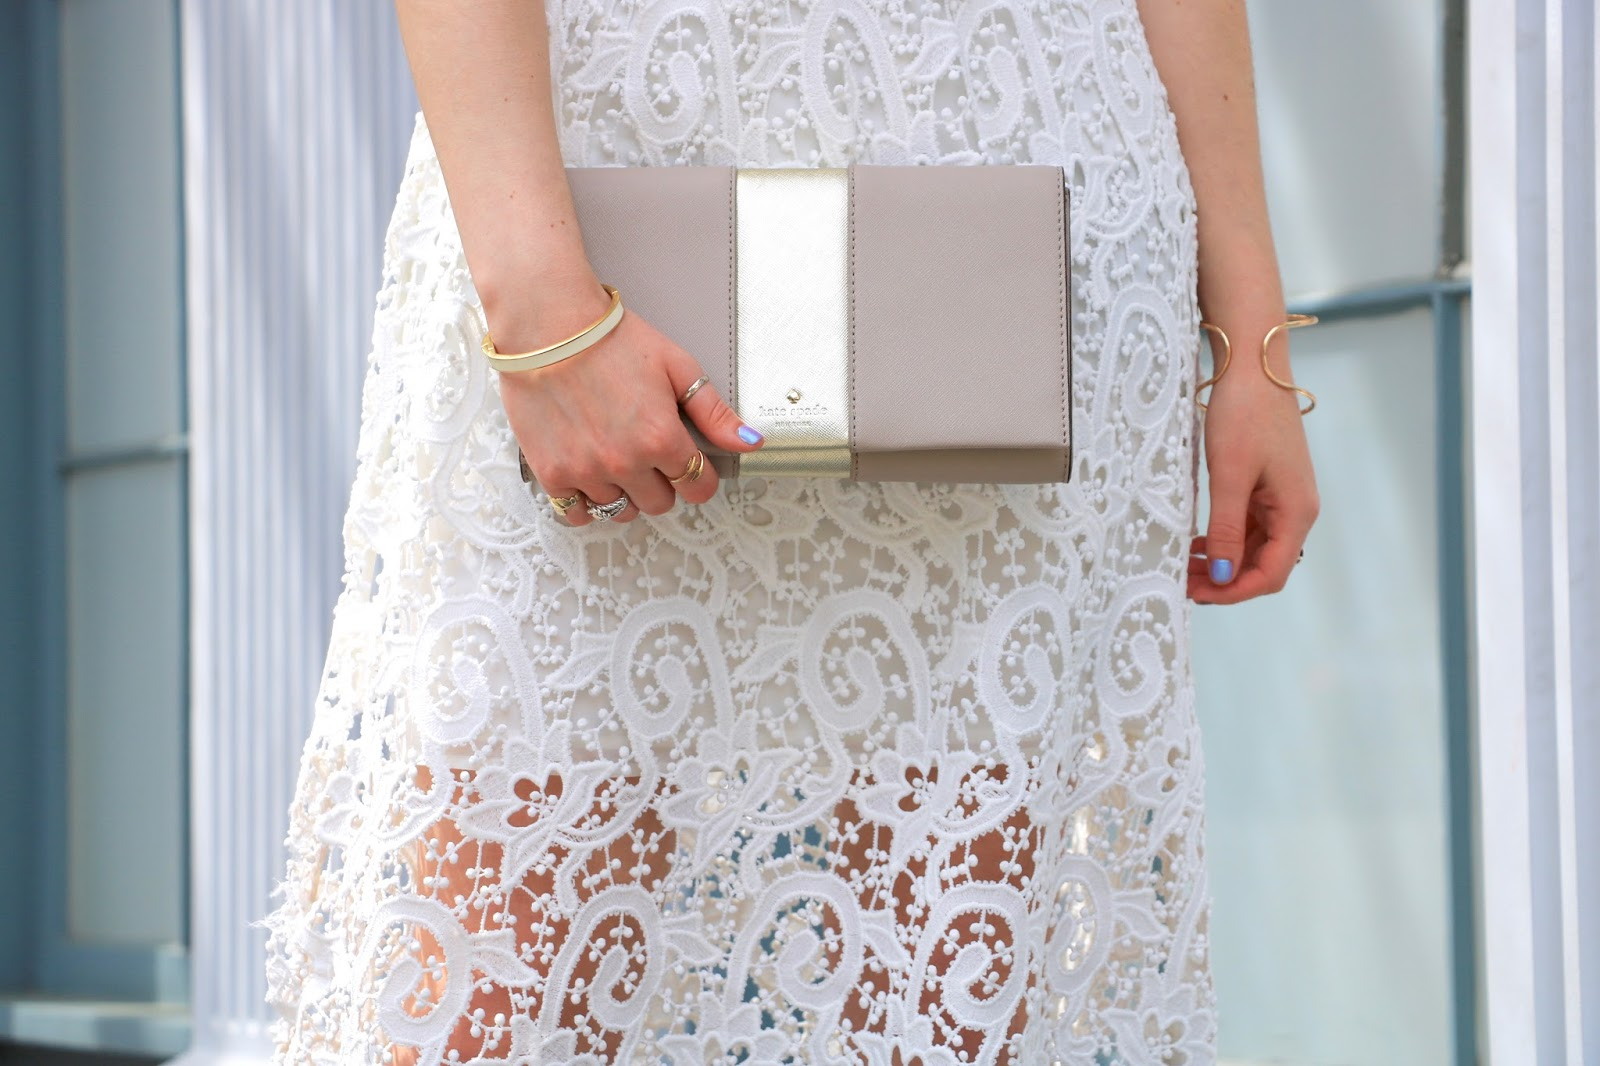 nyc fashion blogger Kathleen Harper holding a gold Kate Spade clutch